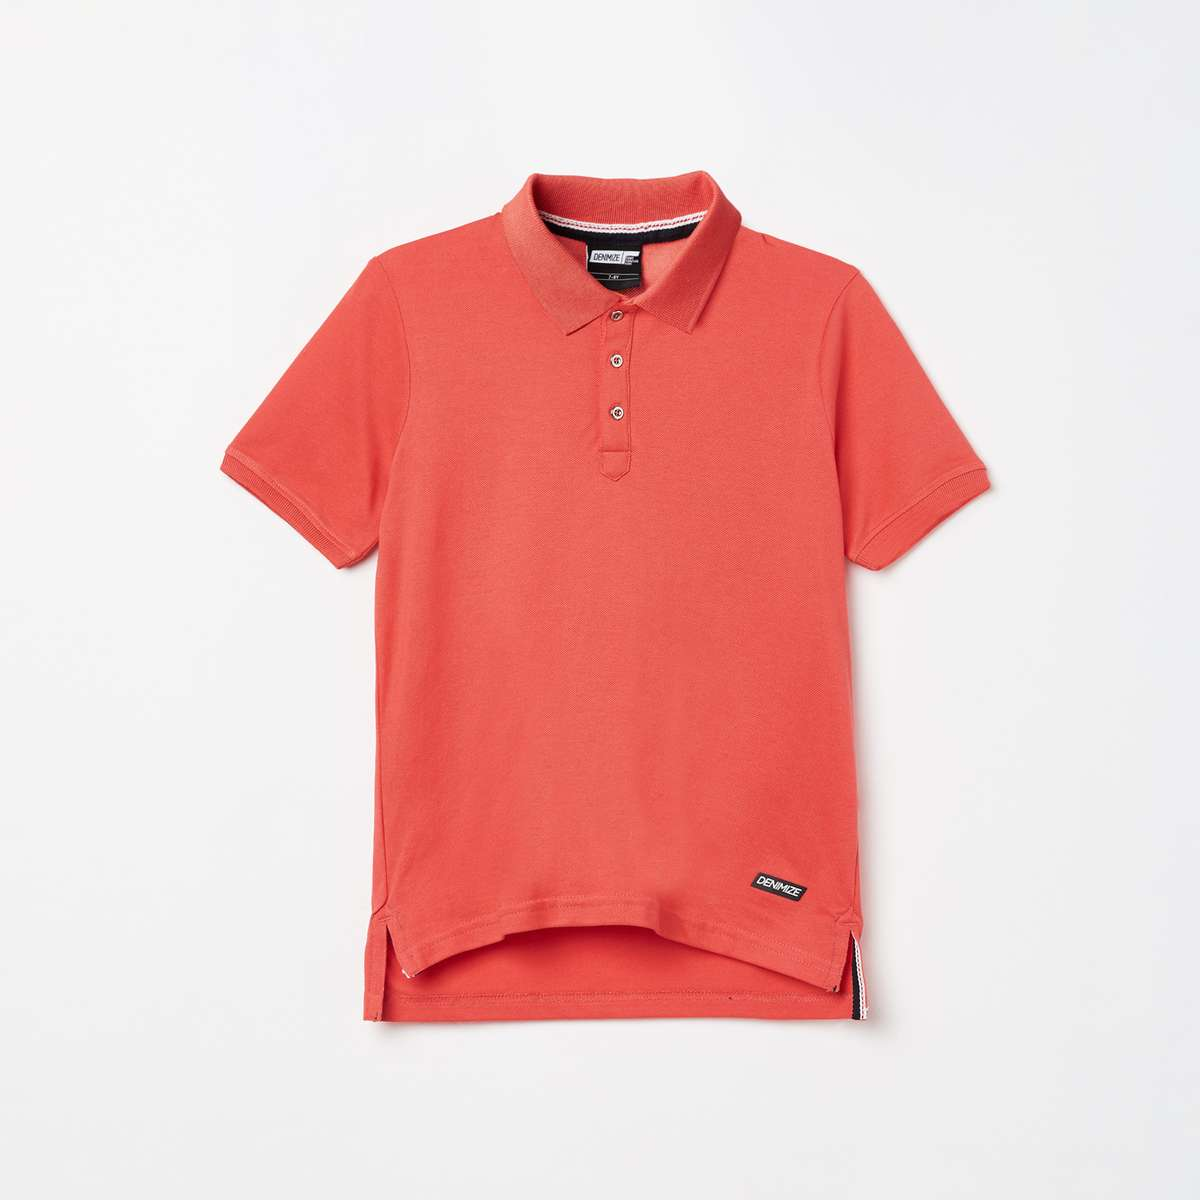 3.DENIMIZE Boys Solid Polo T-shirt